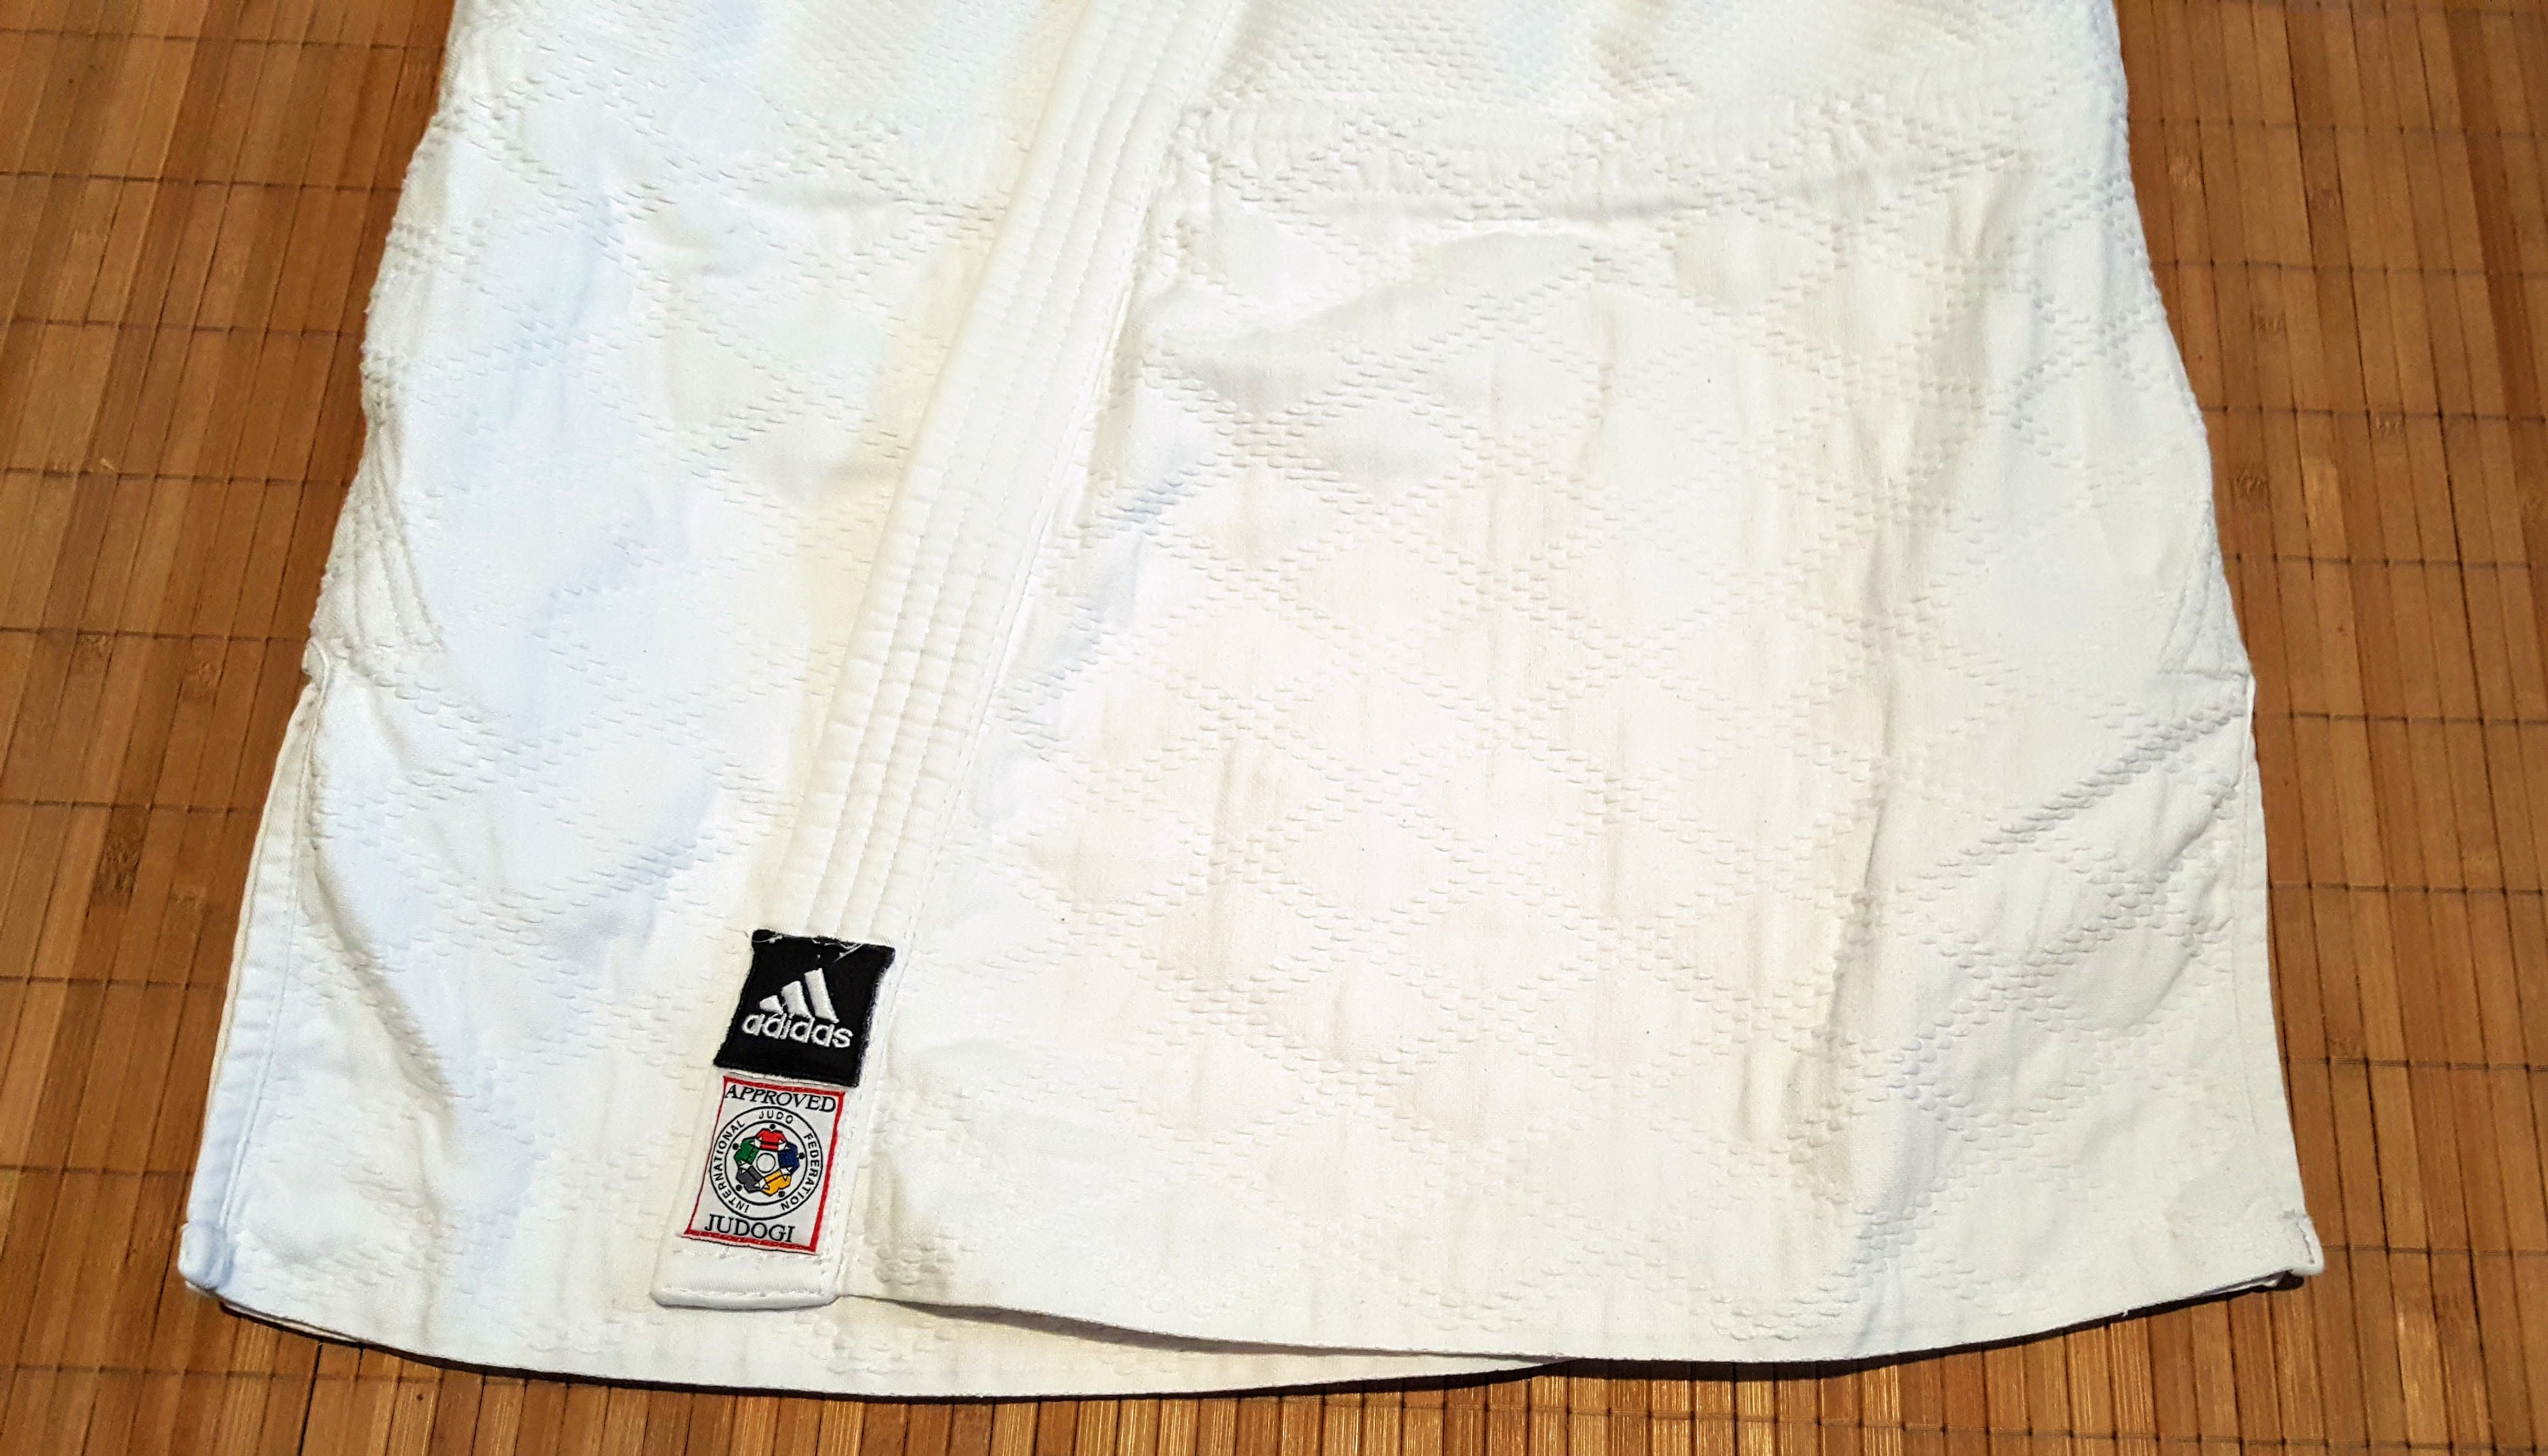 adidas Champion II judo suit in test and long term